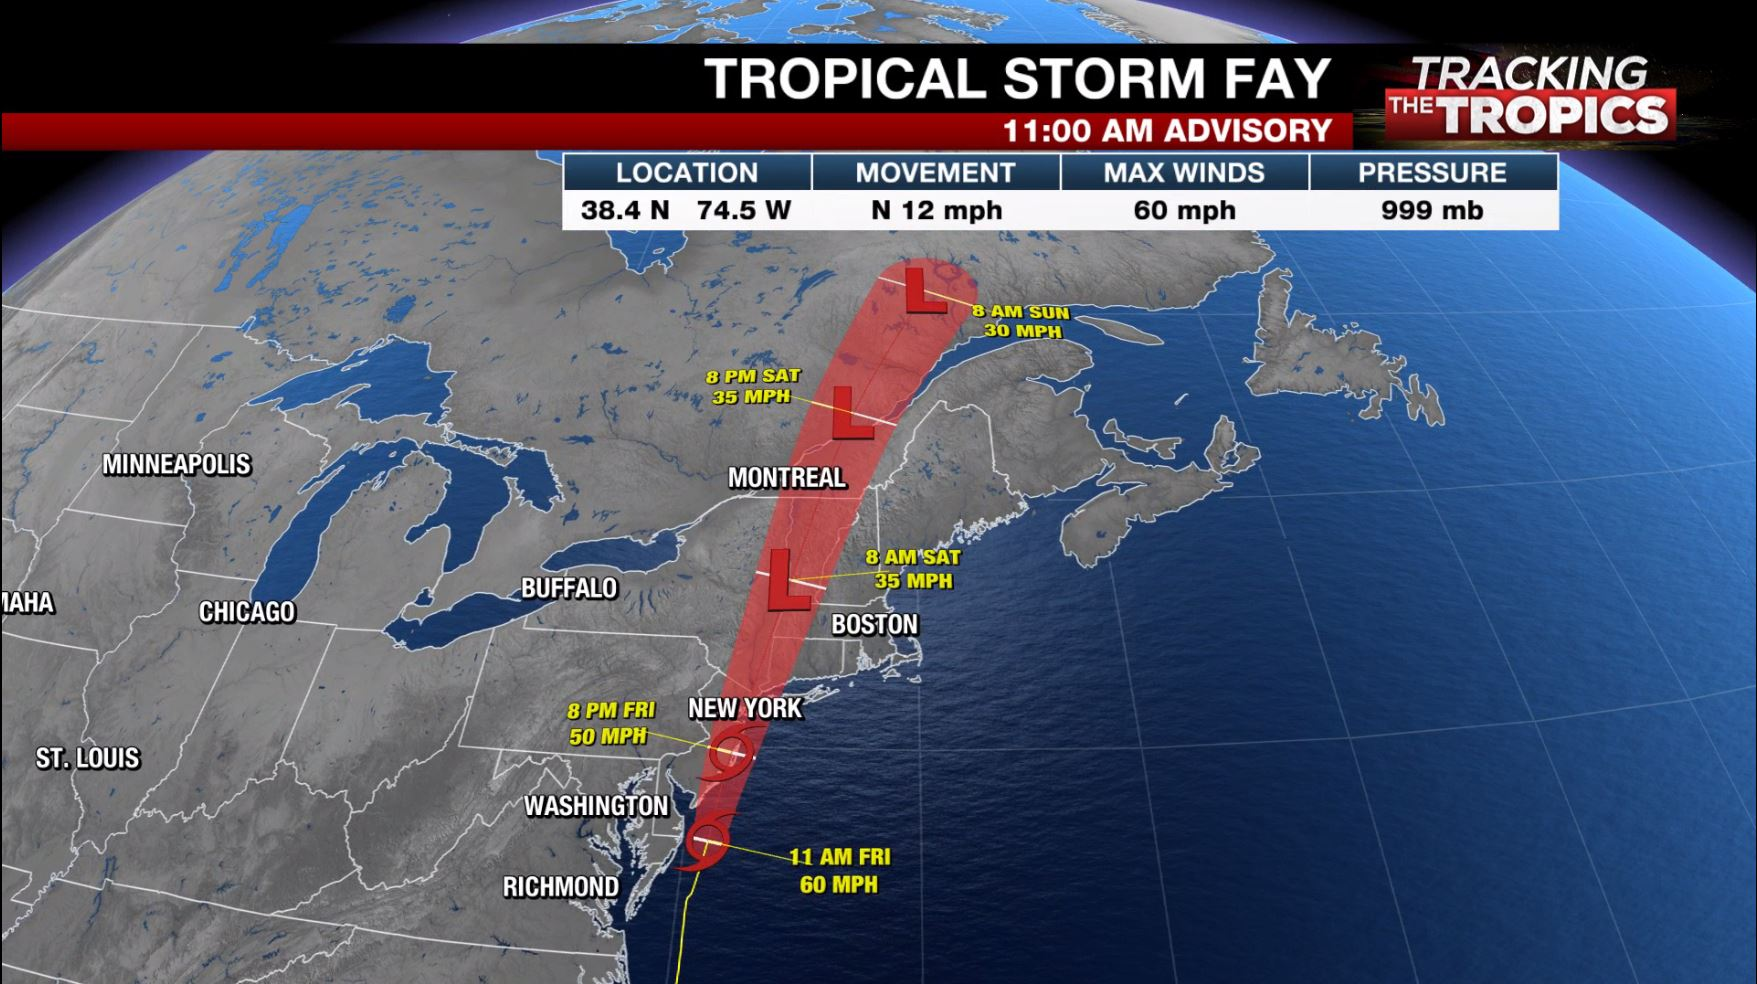 Tracking the Tropics: Tropical Storm Fay moving toward Atlantic coast with 60 mph winds